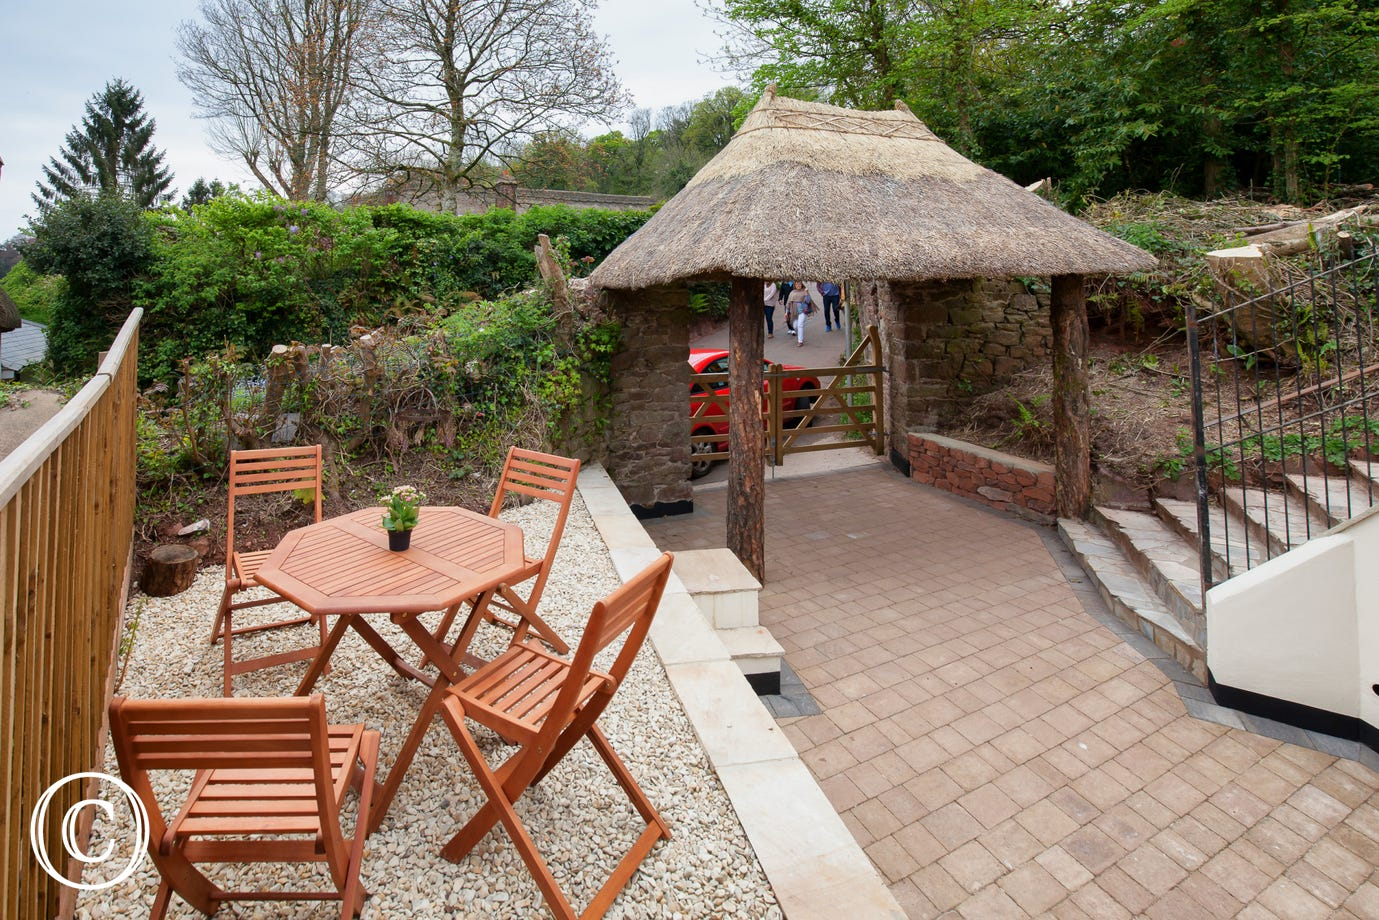 Alfresco dining on the sun trap gravelled terrace with wooden table and chairs